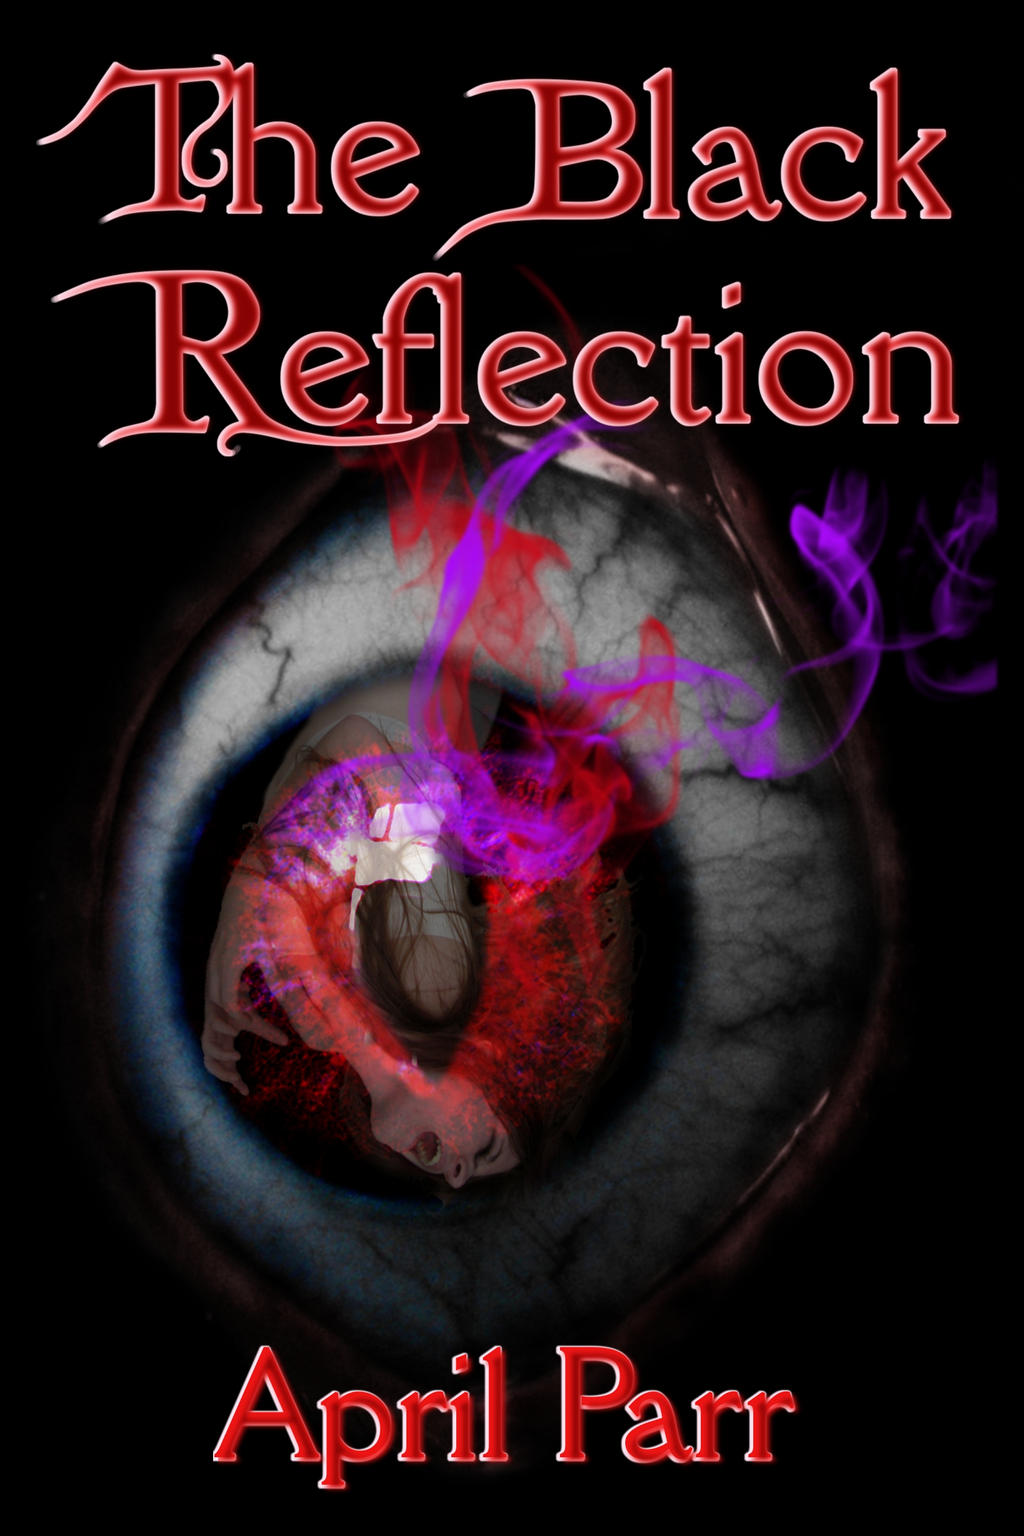 the black reflection book coverFINAL by trull9999